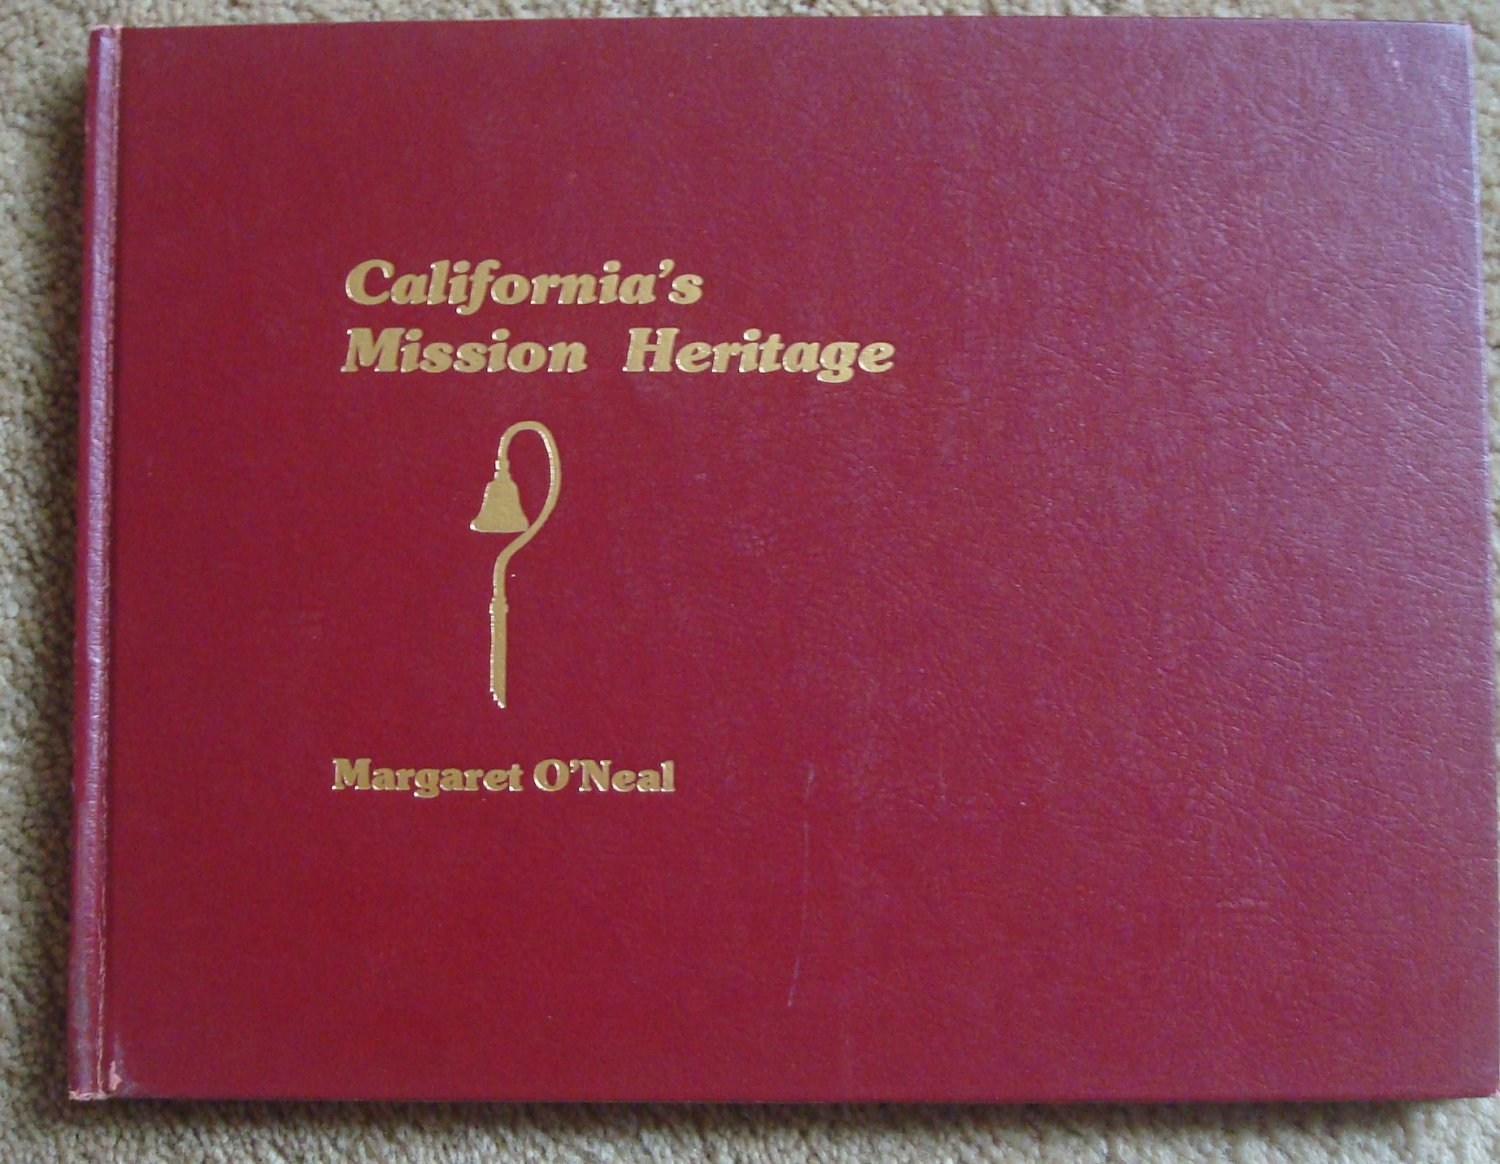 California's Mission Heritage